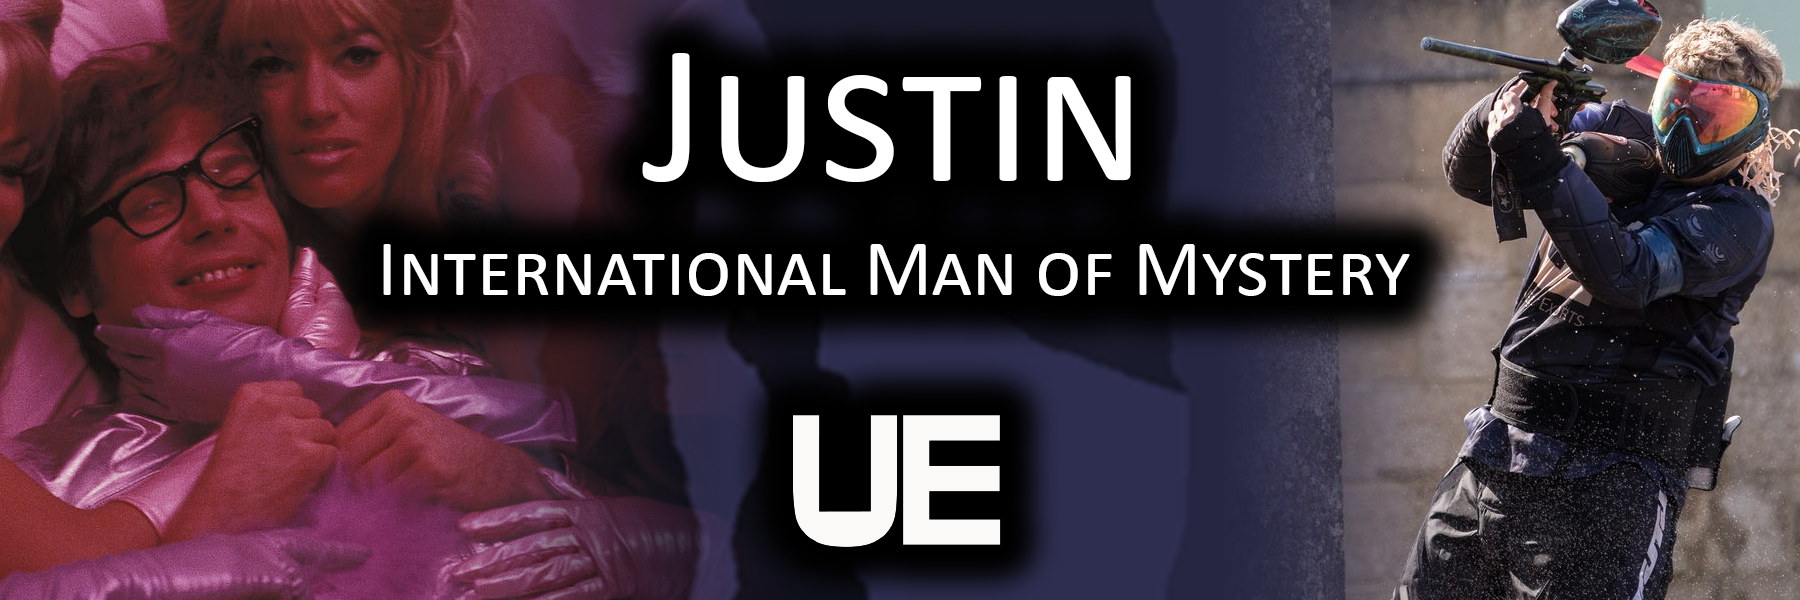 Justin - International Man of Mystery